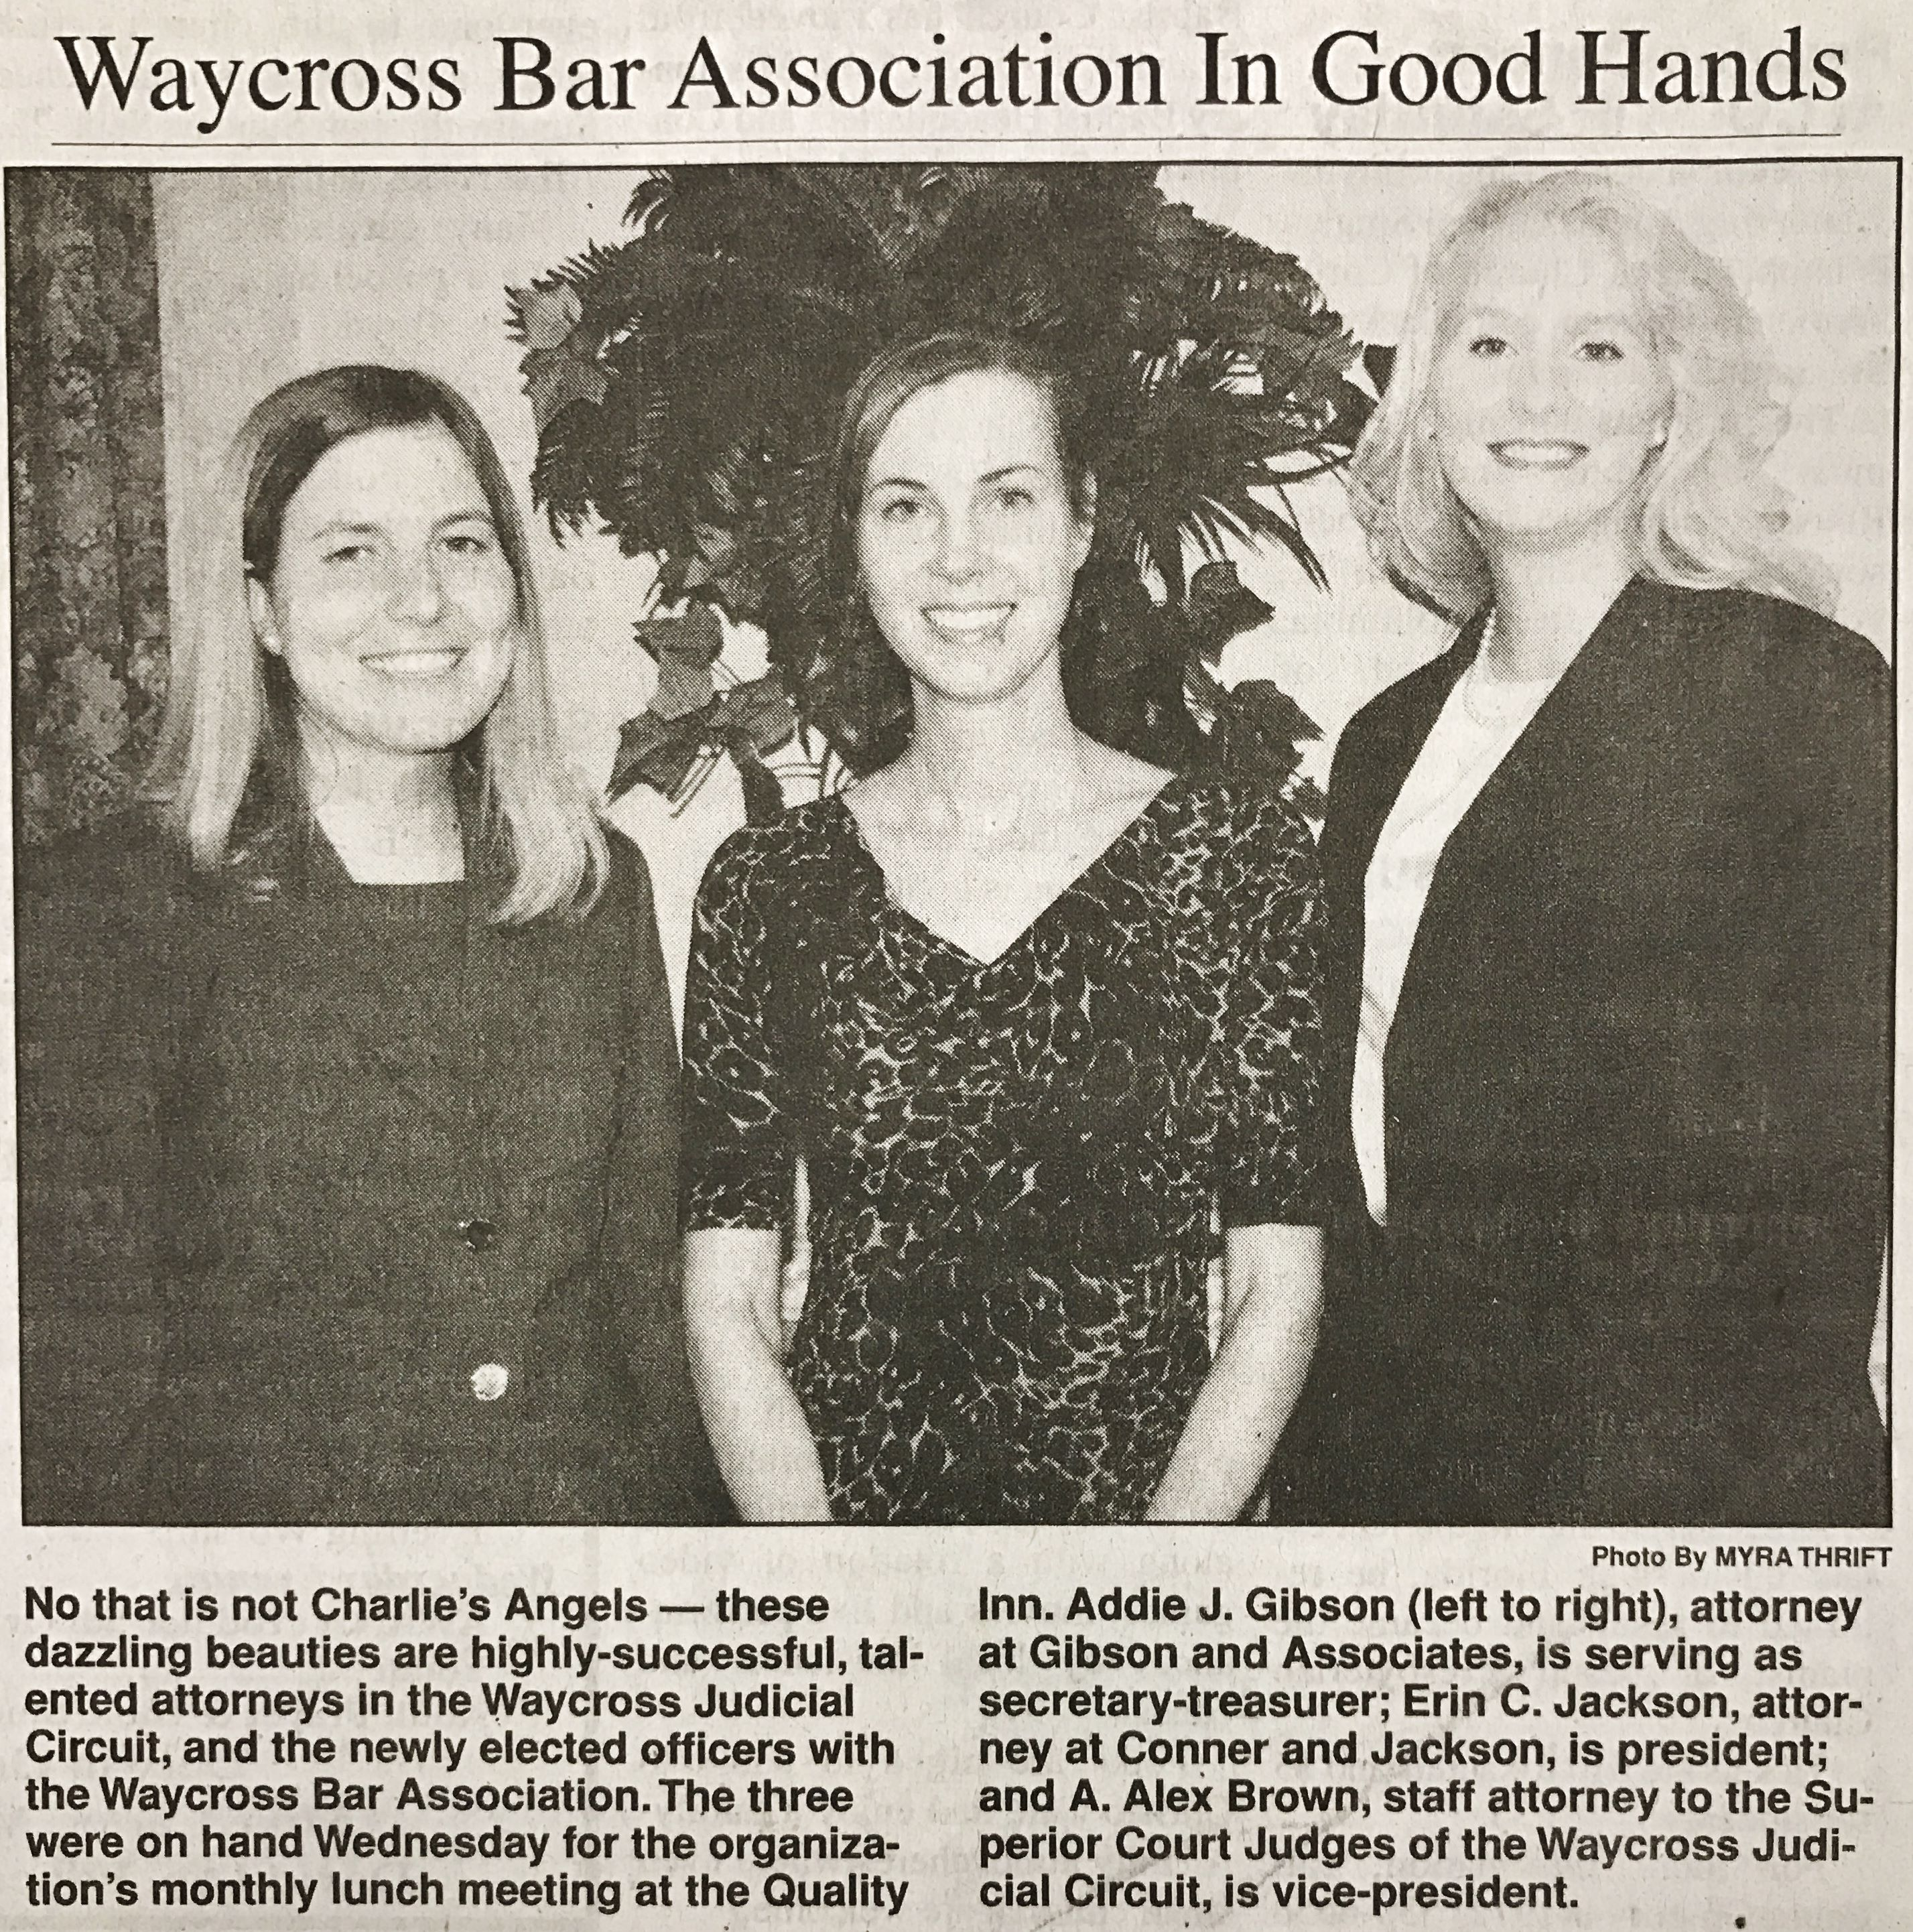 Waycross Bar Association In Good Hands